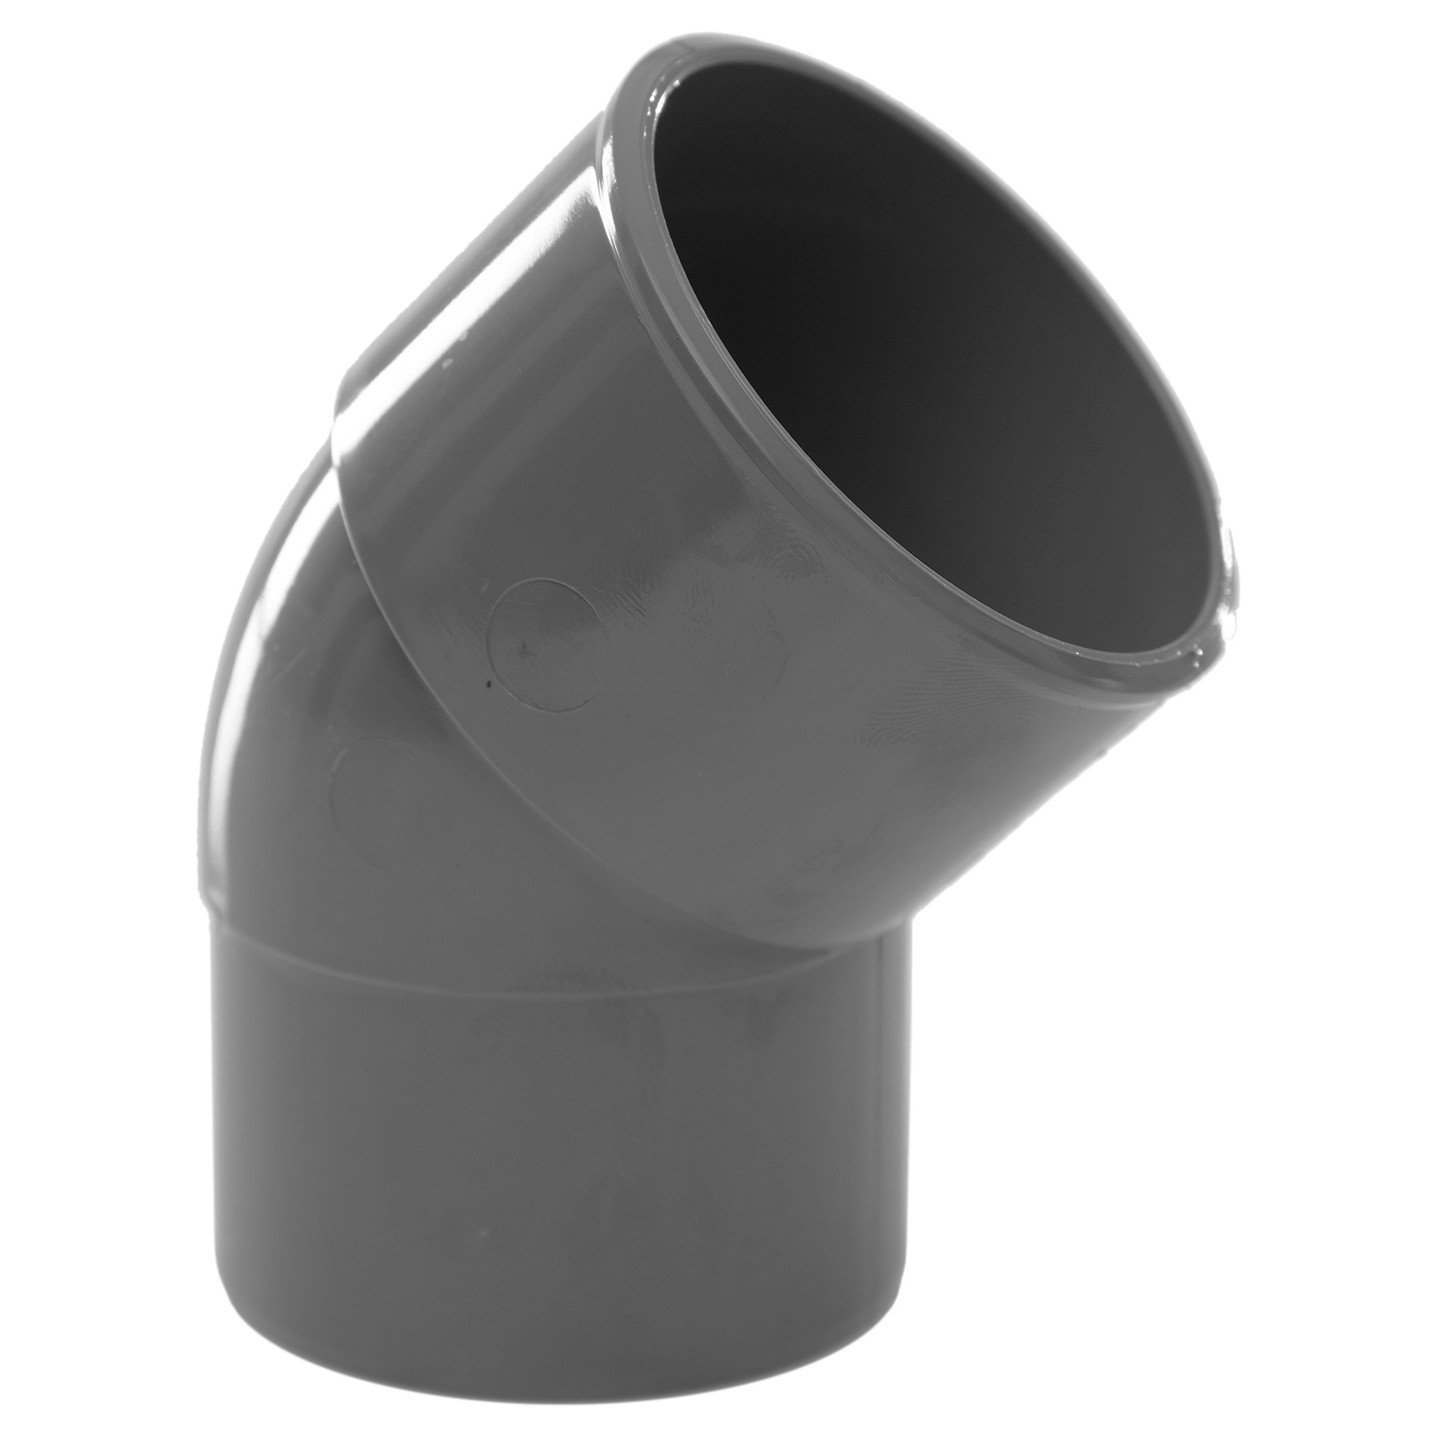 Polypipe 50mm Solvent Weld Waste 45 Degree Spigot Bend - Grey